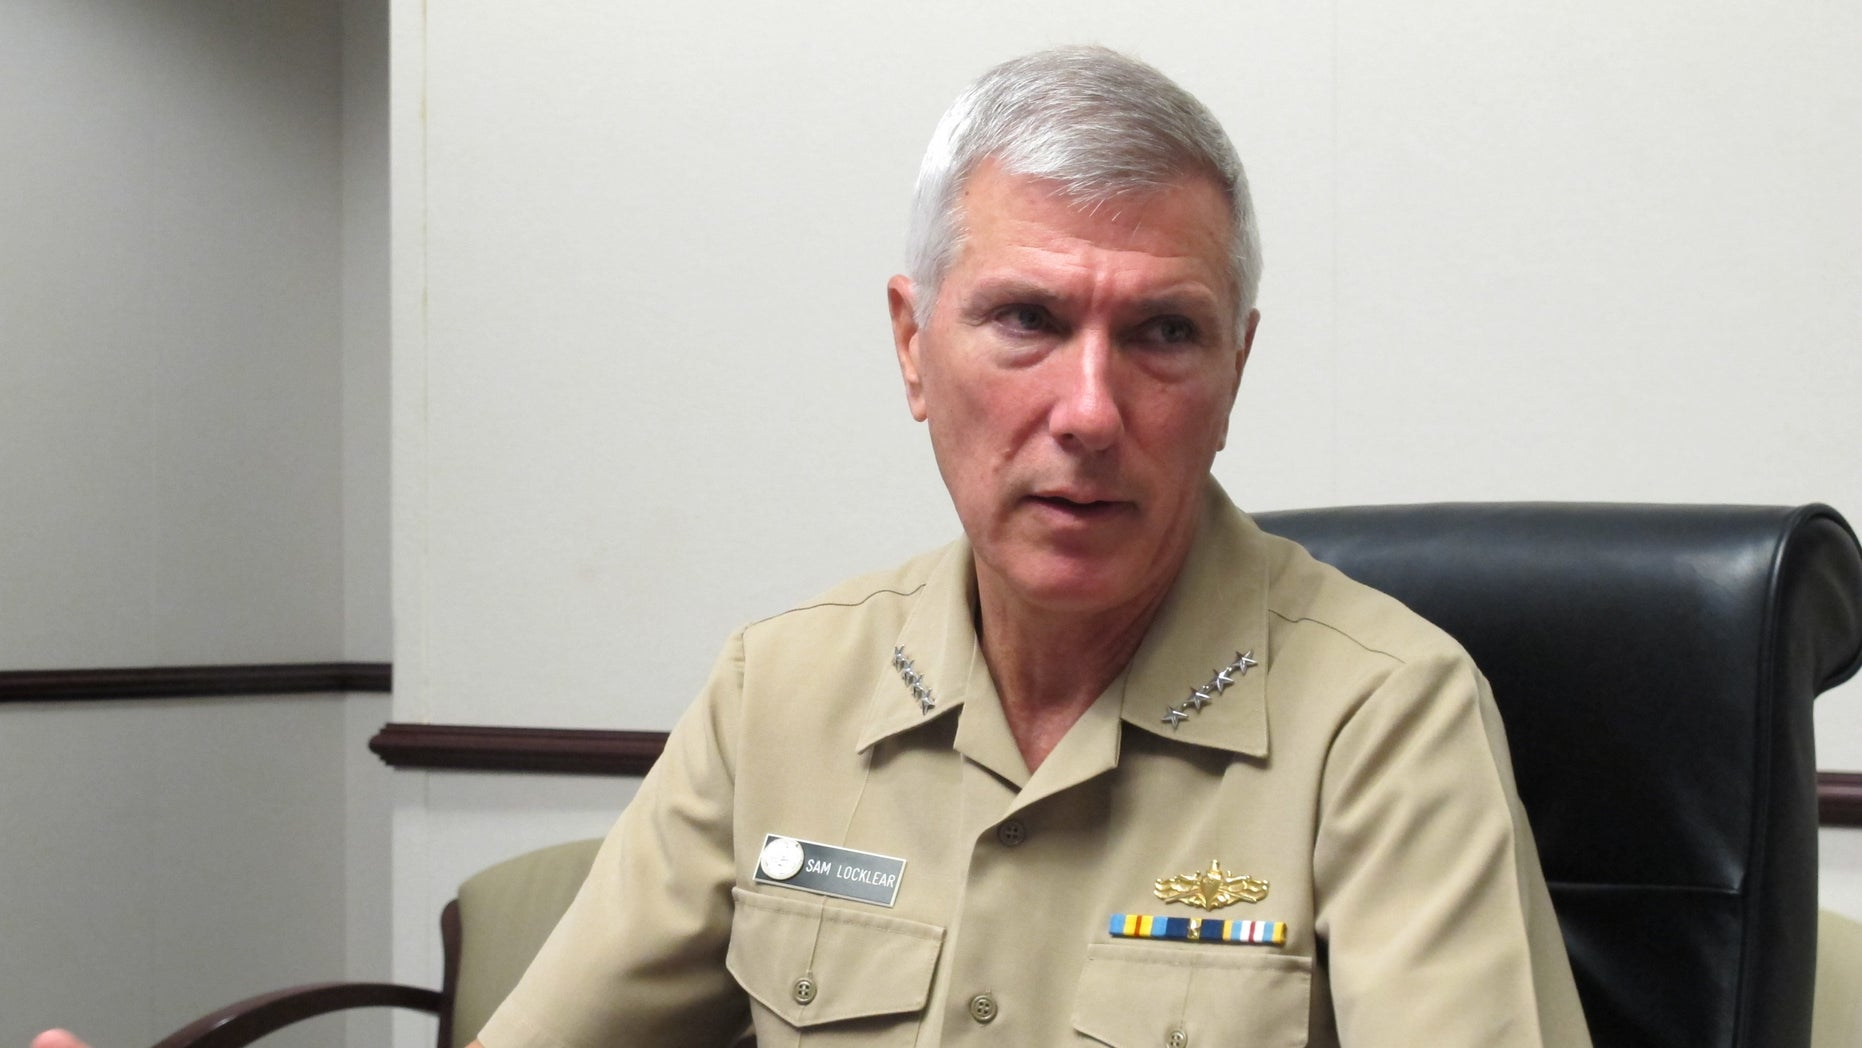 July 25, 2012: Adm. Samuel Locklear III, the U.S. Pacific Command commander, speaks to reporters at his headquarters in Camp H.M. Smith, Hawaii.